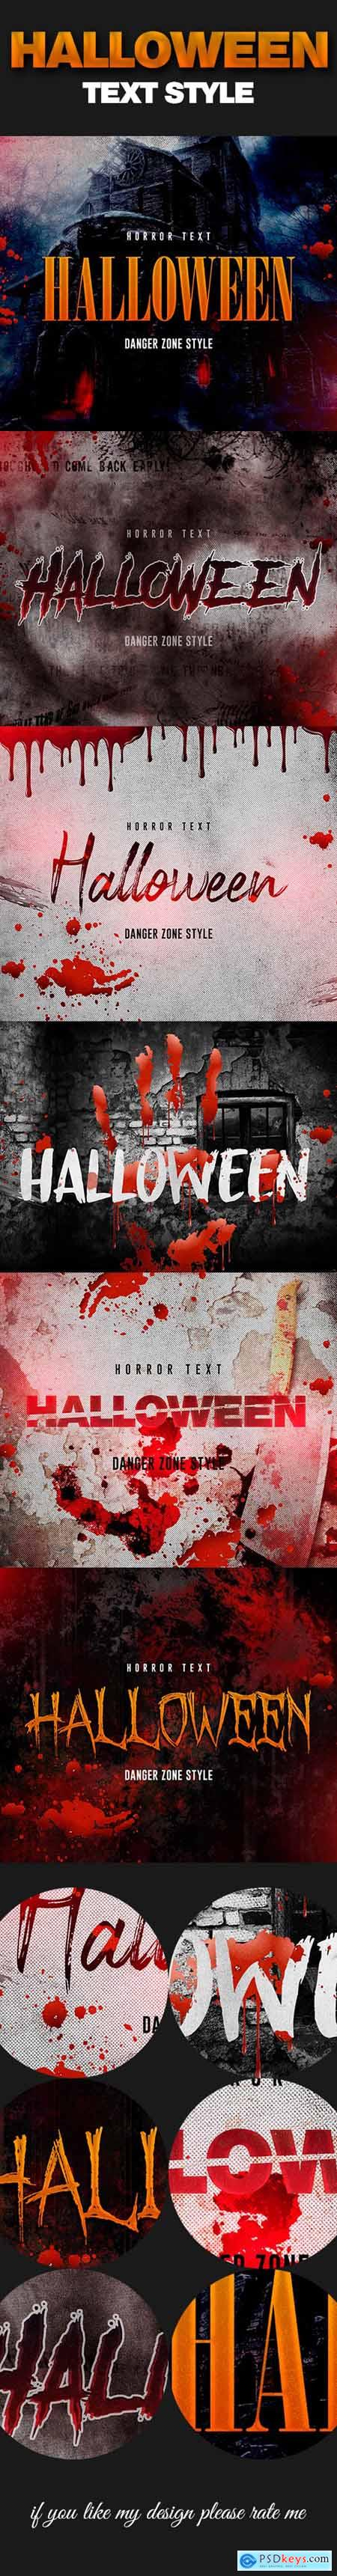 Halloween Horror Text Effect 24729608